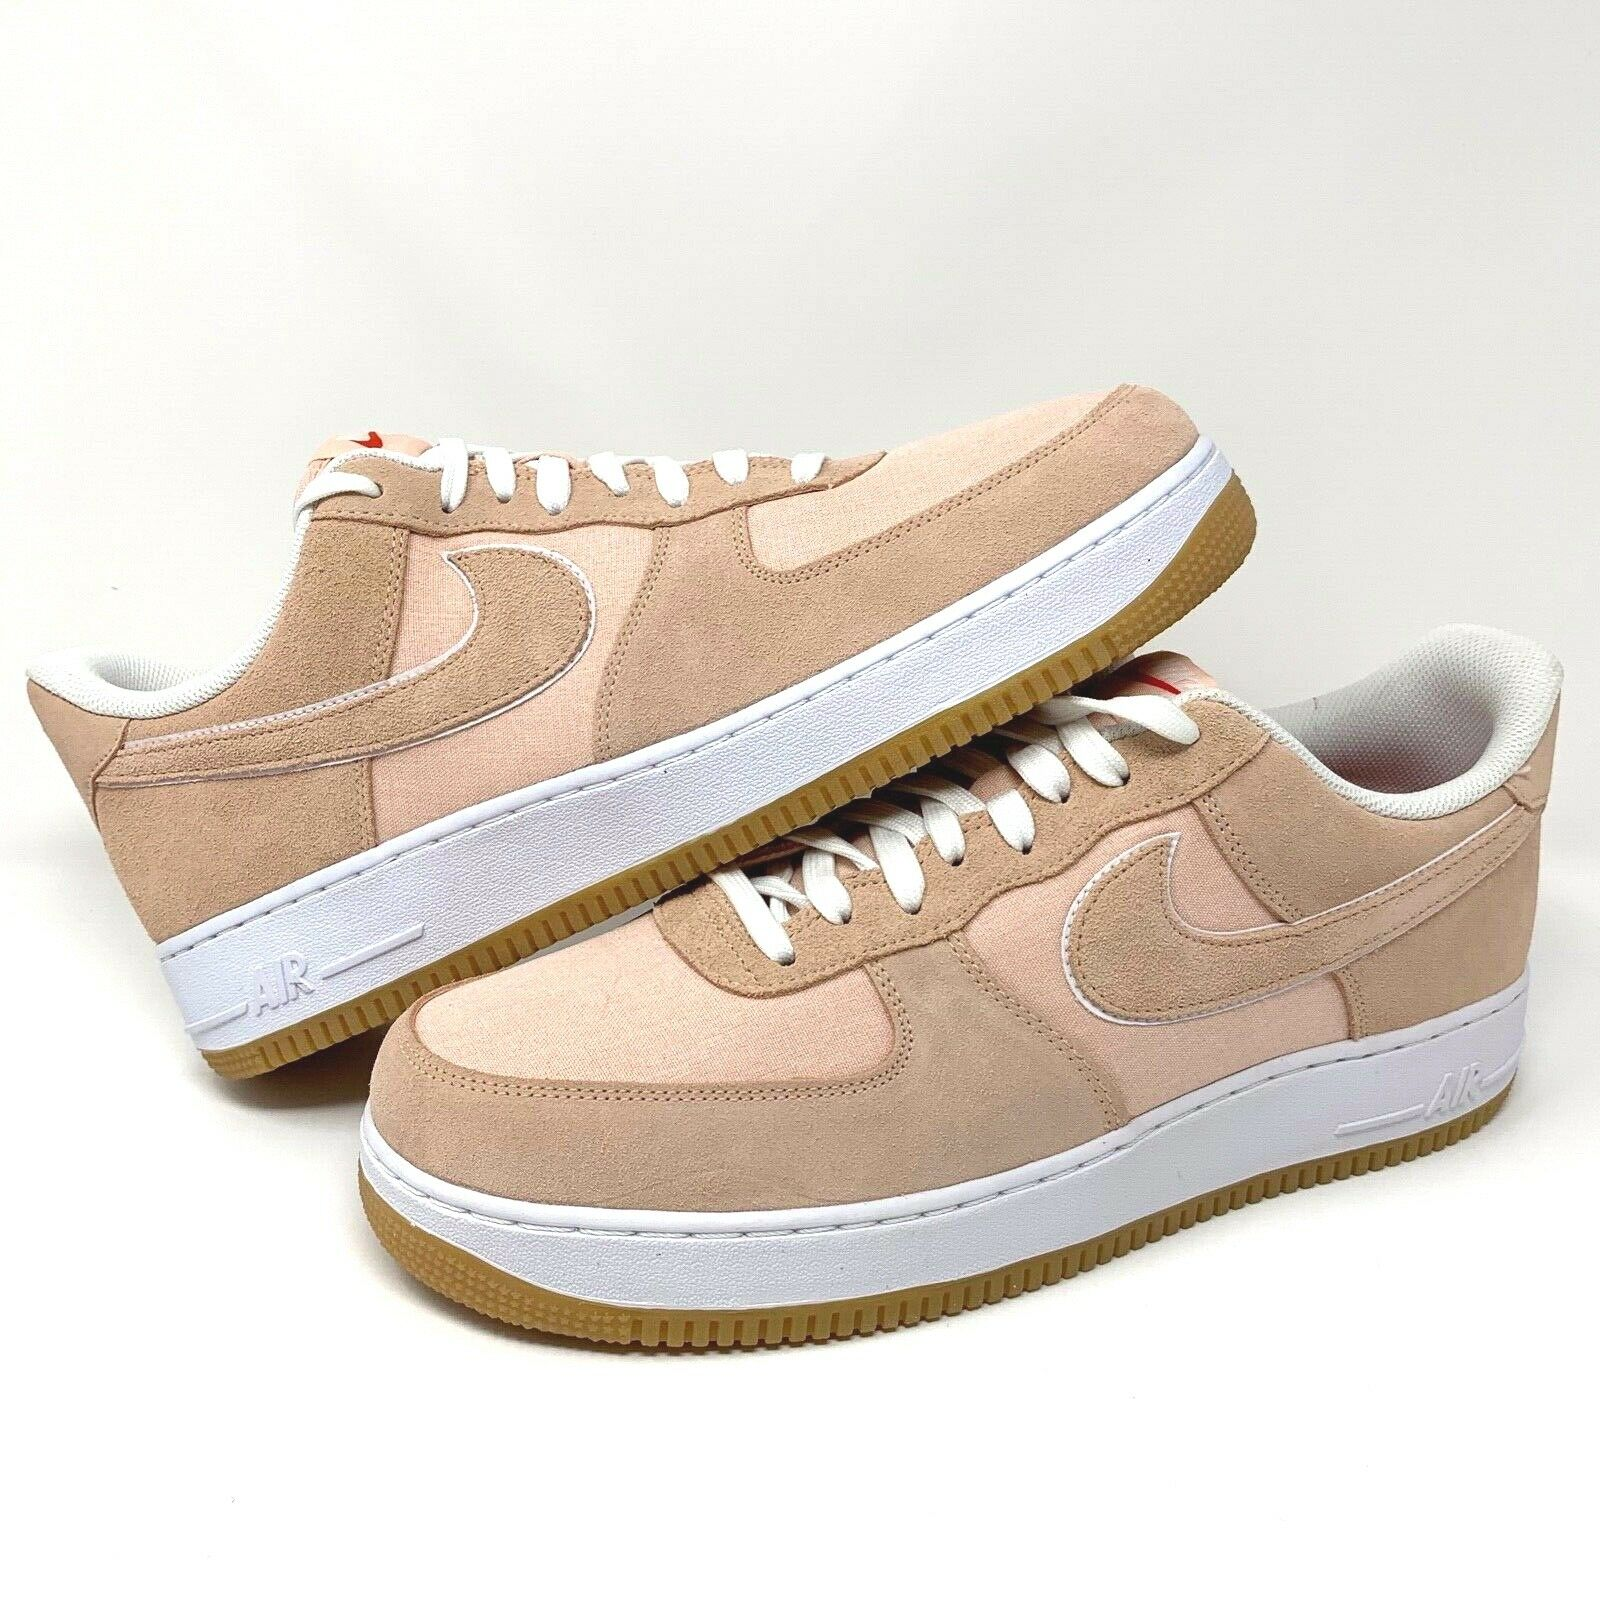 Nike Air Force 1 One '07 Low Arctic orange White (315122-801) - Size 13